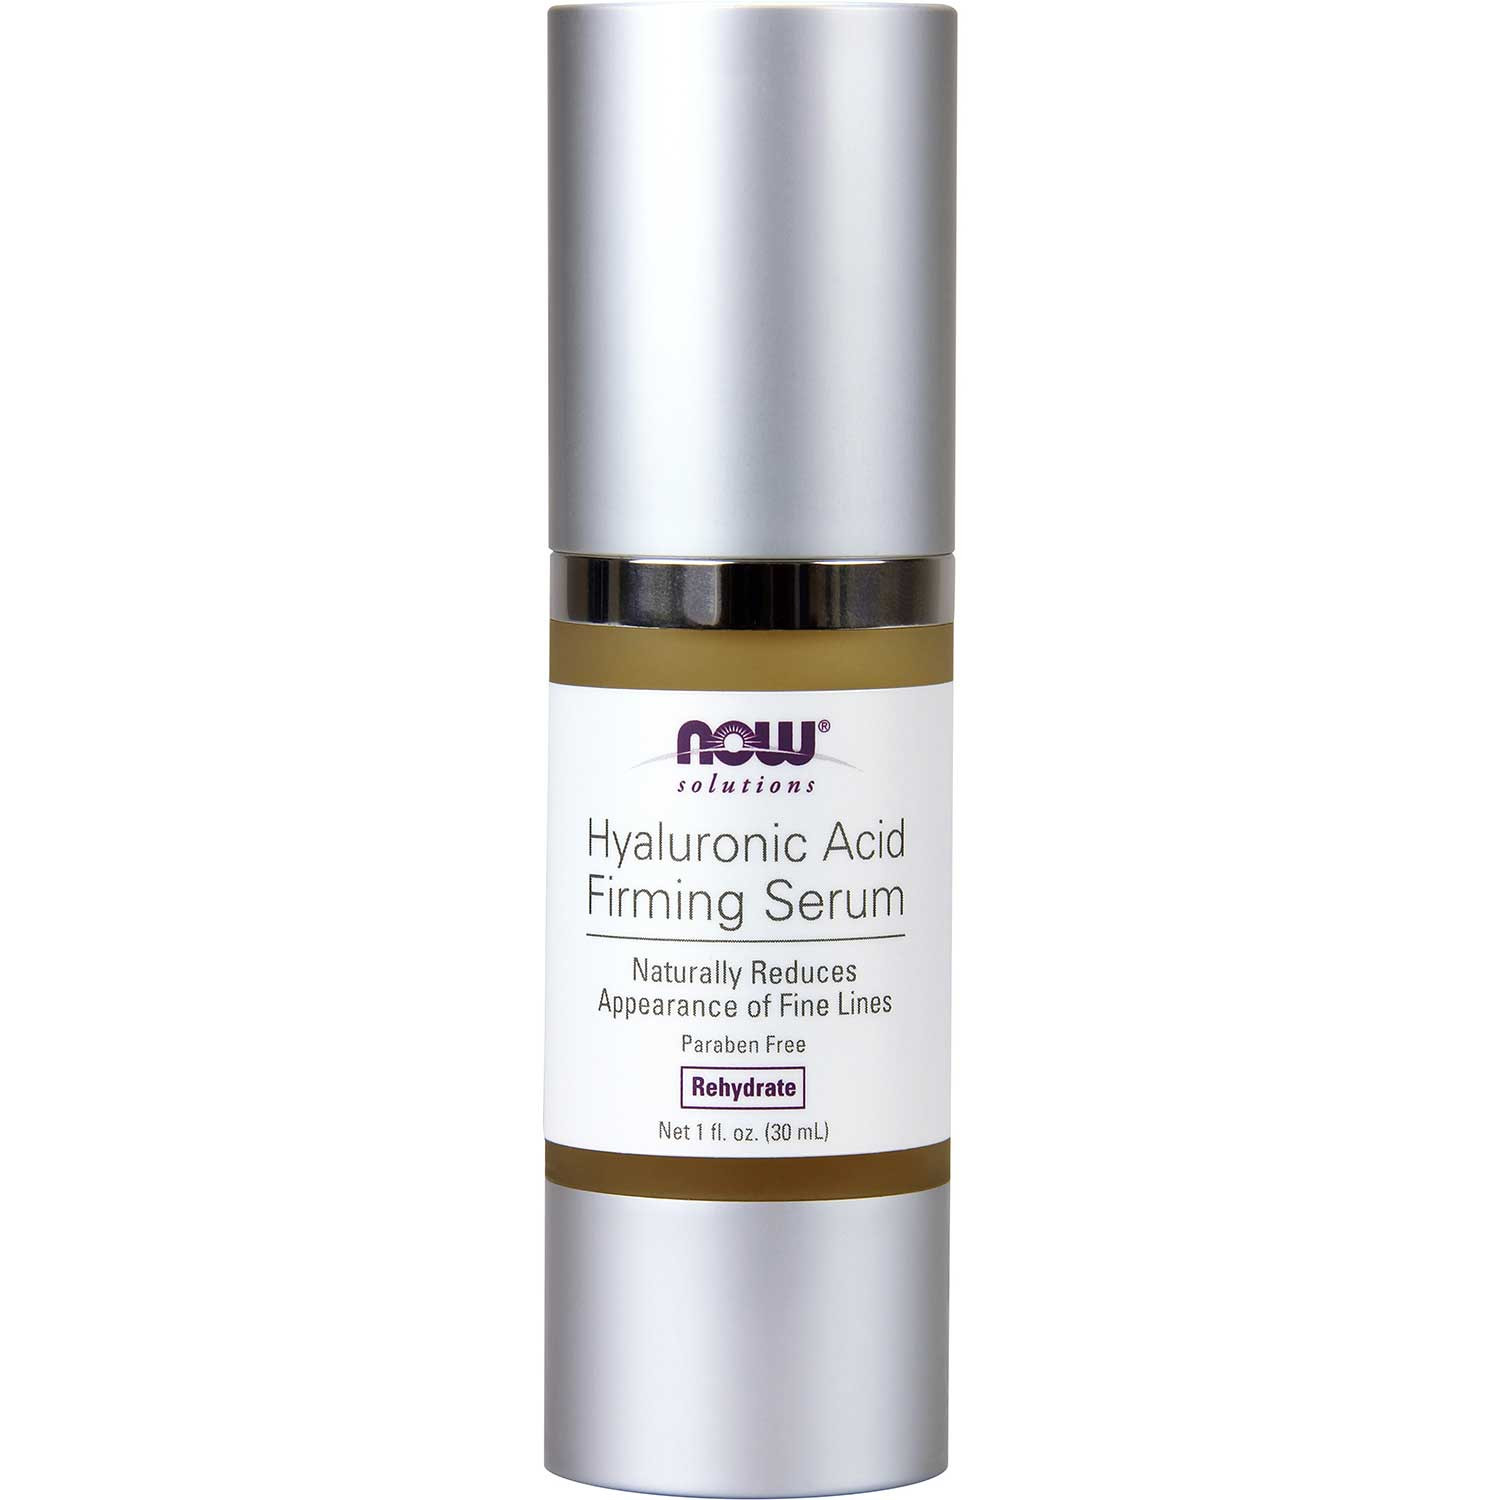 NOW Solutions Hyaluronic Acid Firming Serum, 30ml